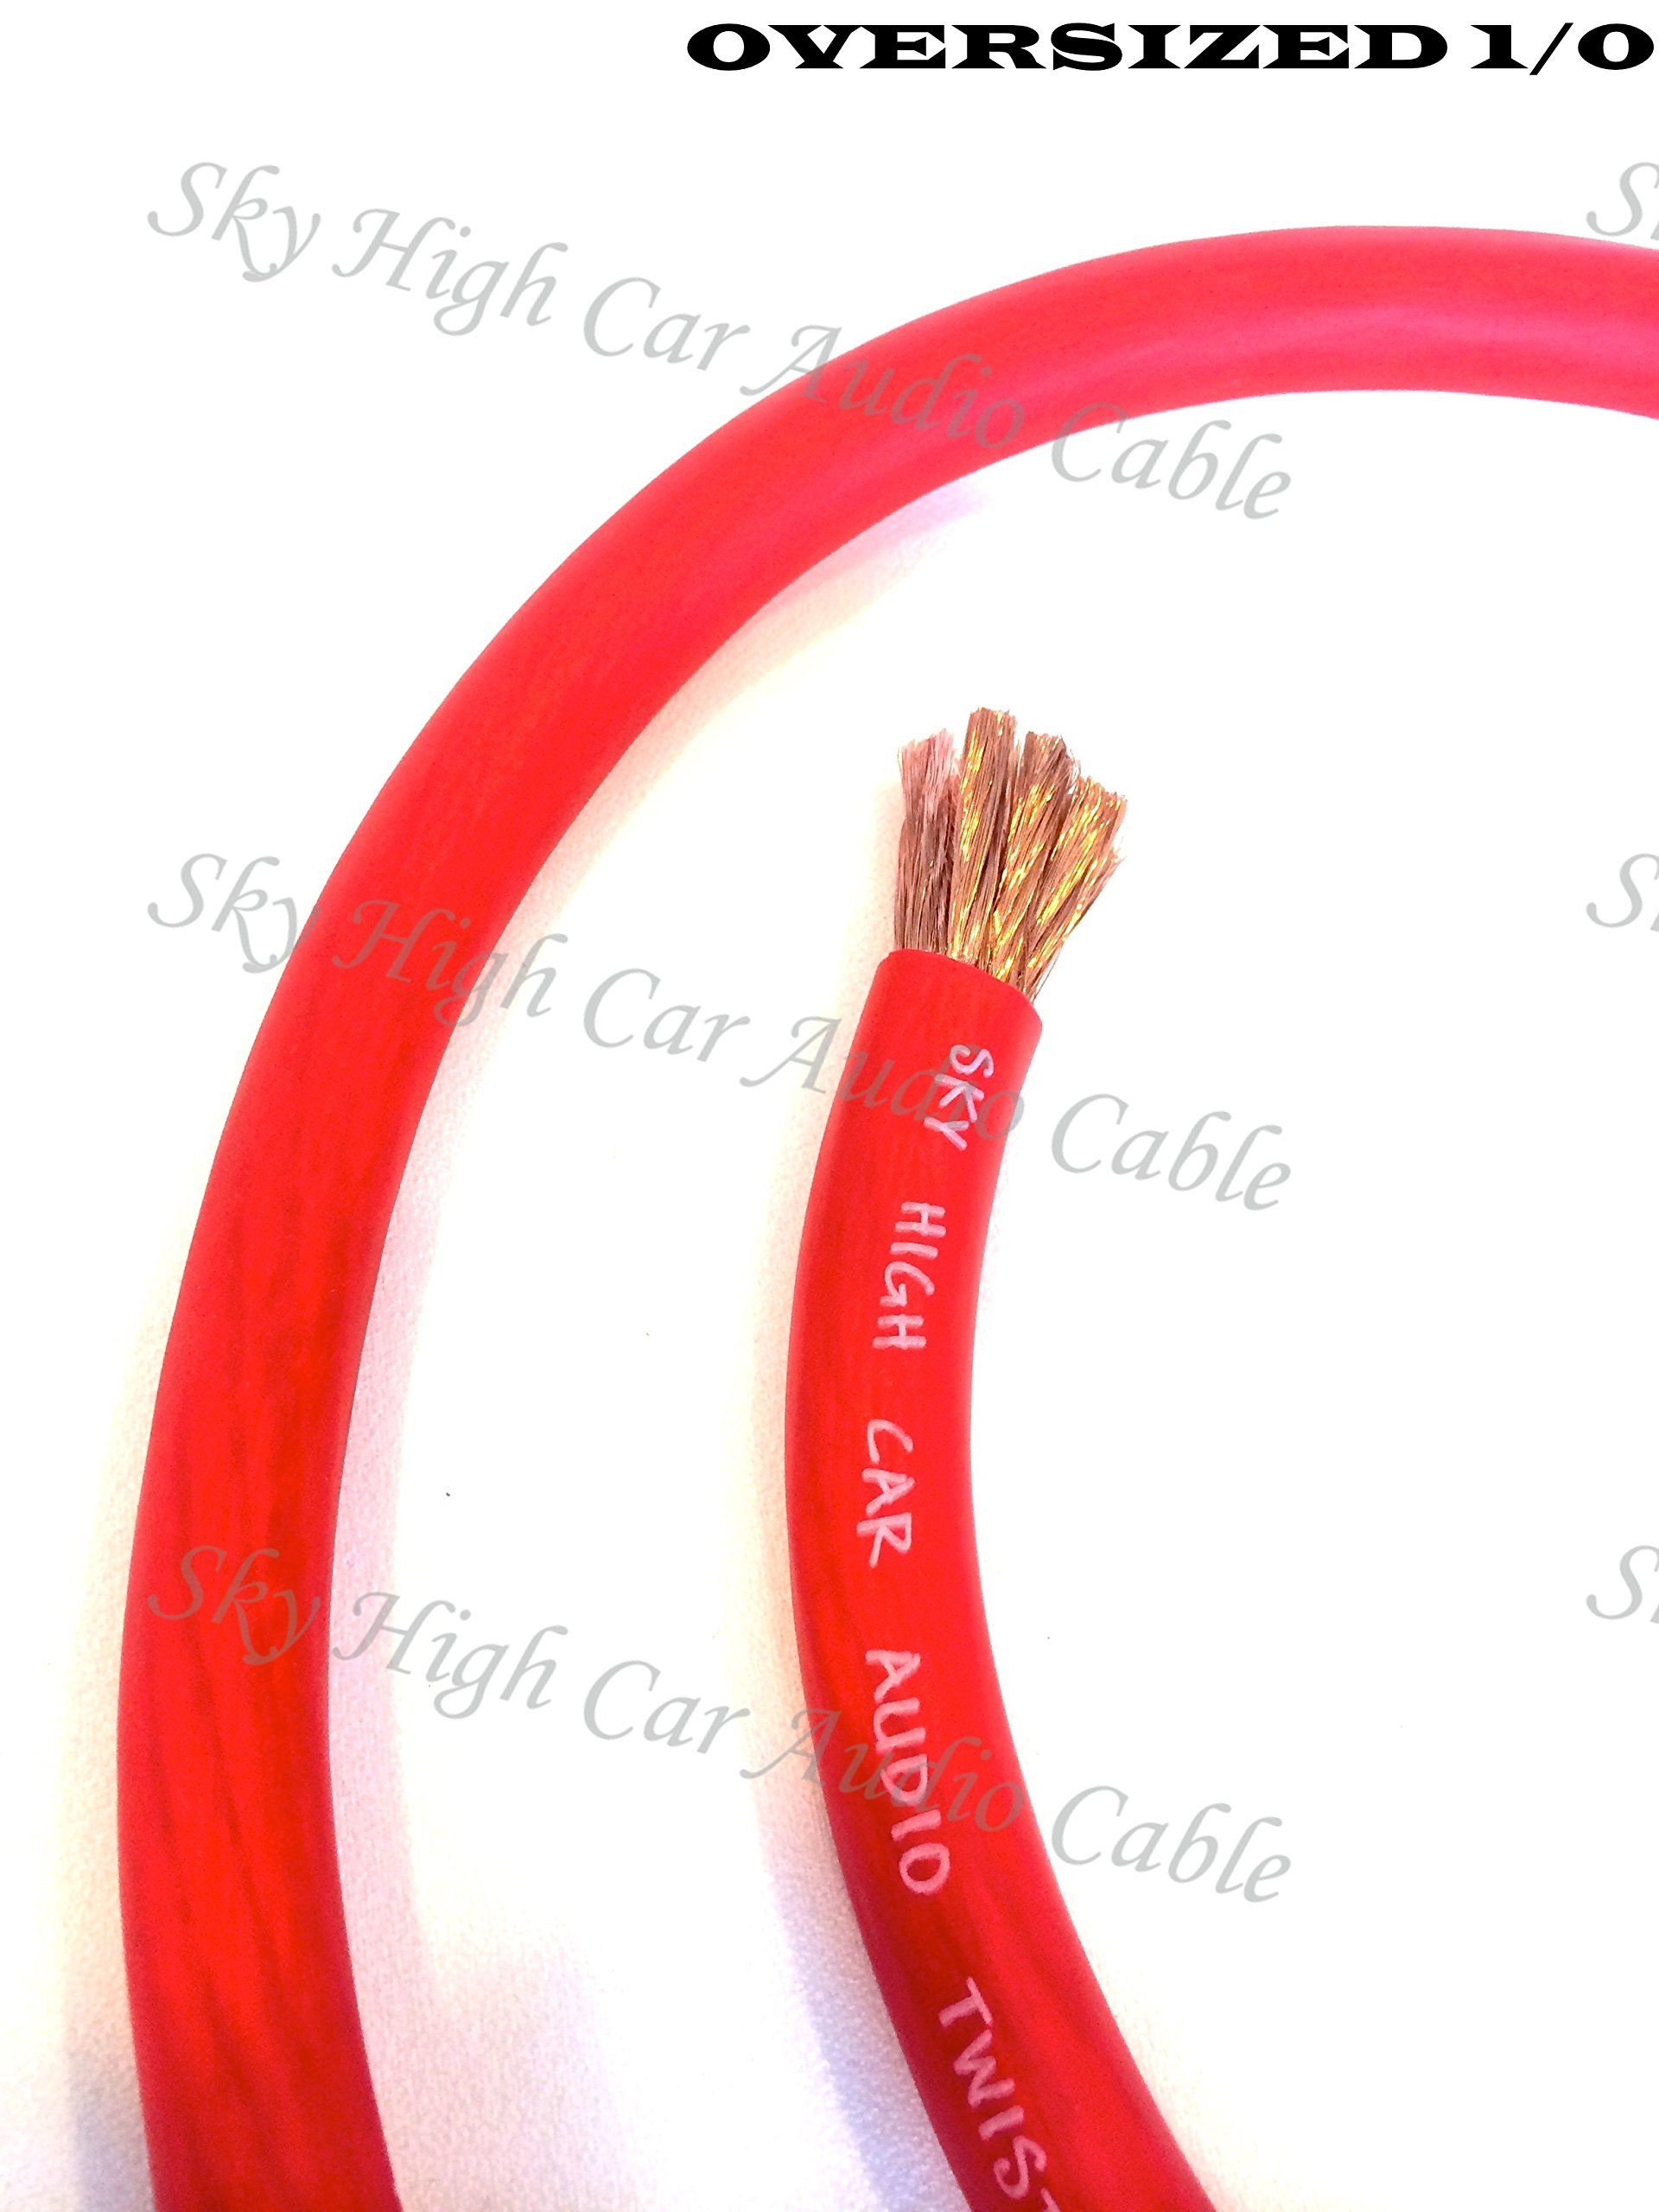 5 ft CCA 1/0 Gauge Oversized RED Power Ground Wire Sky High Car Audio